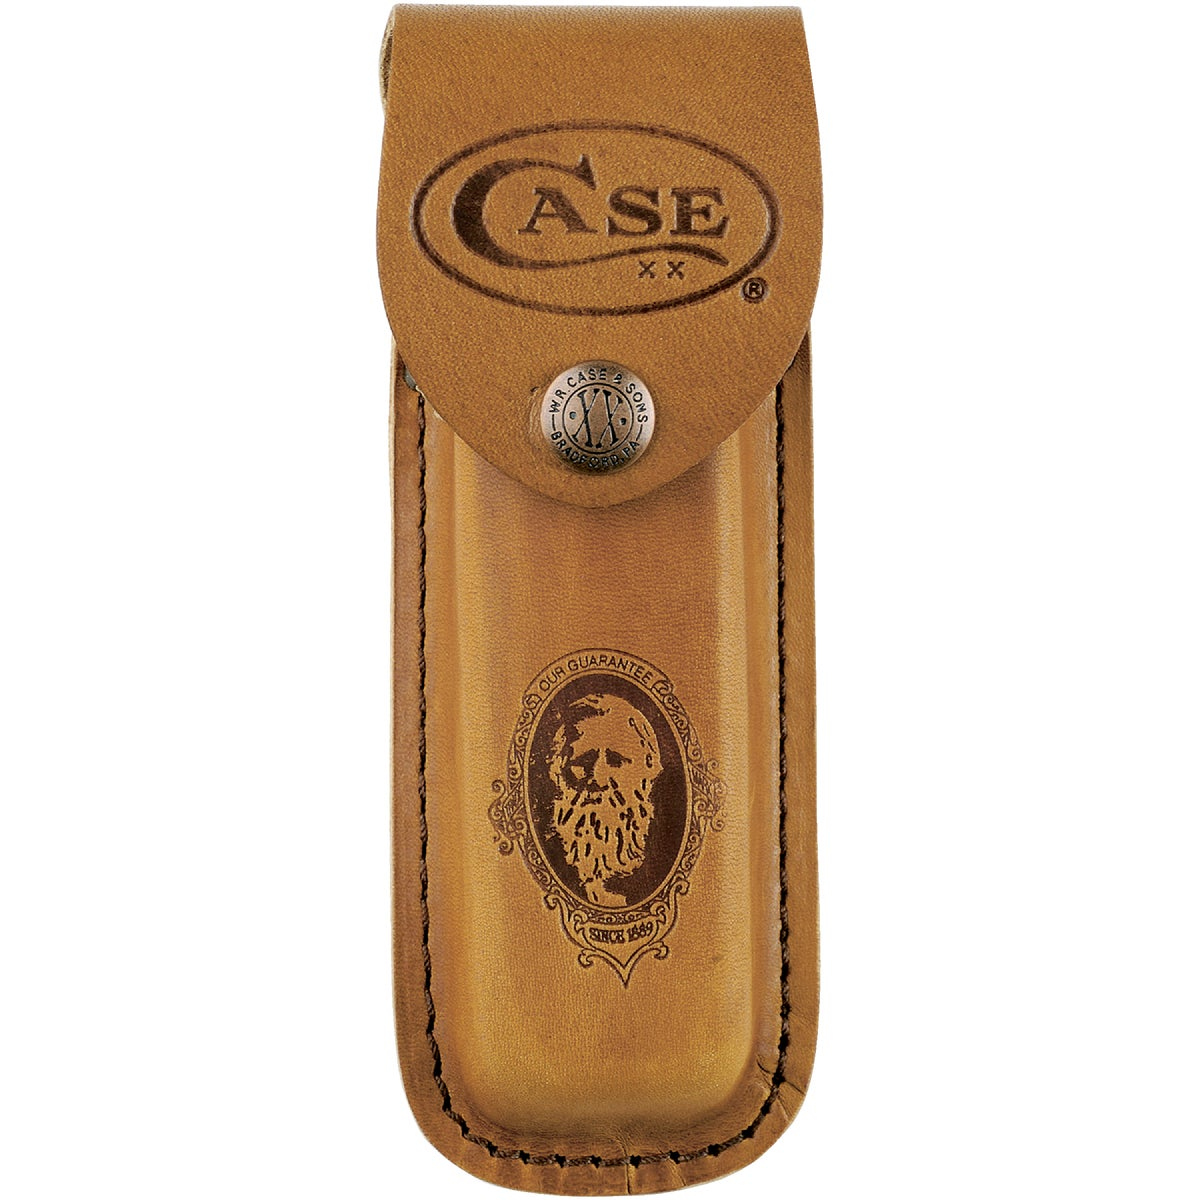 LARGE KNIFE SHEATH - 9027 by Case W R & Sons